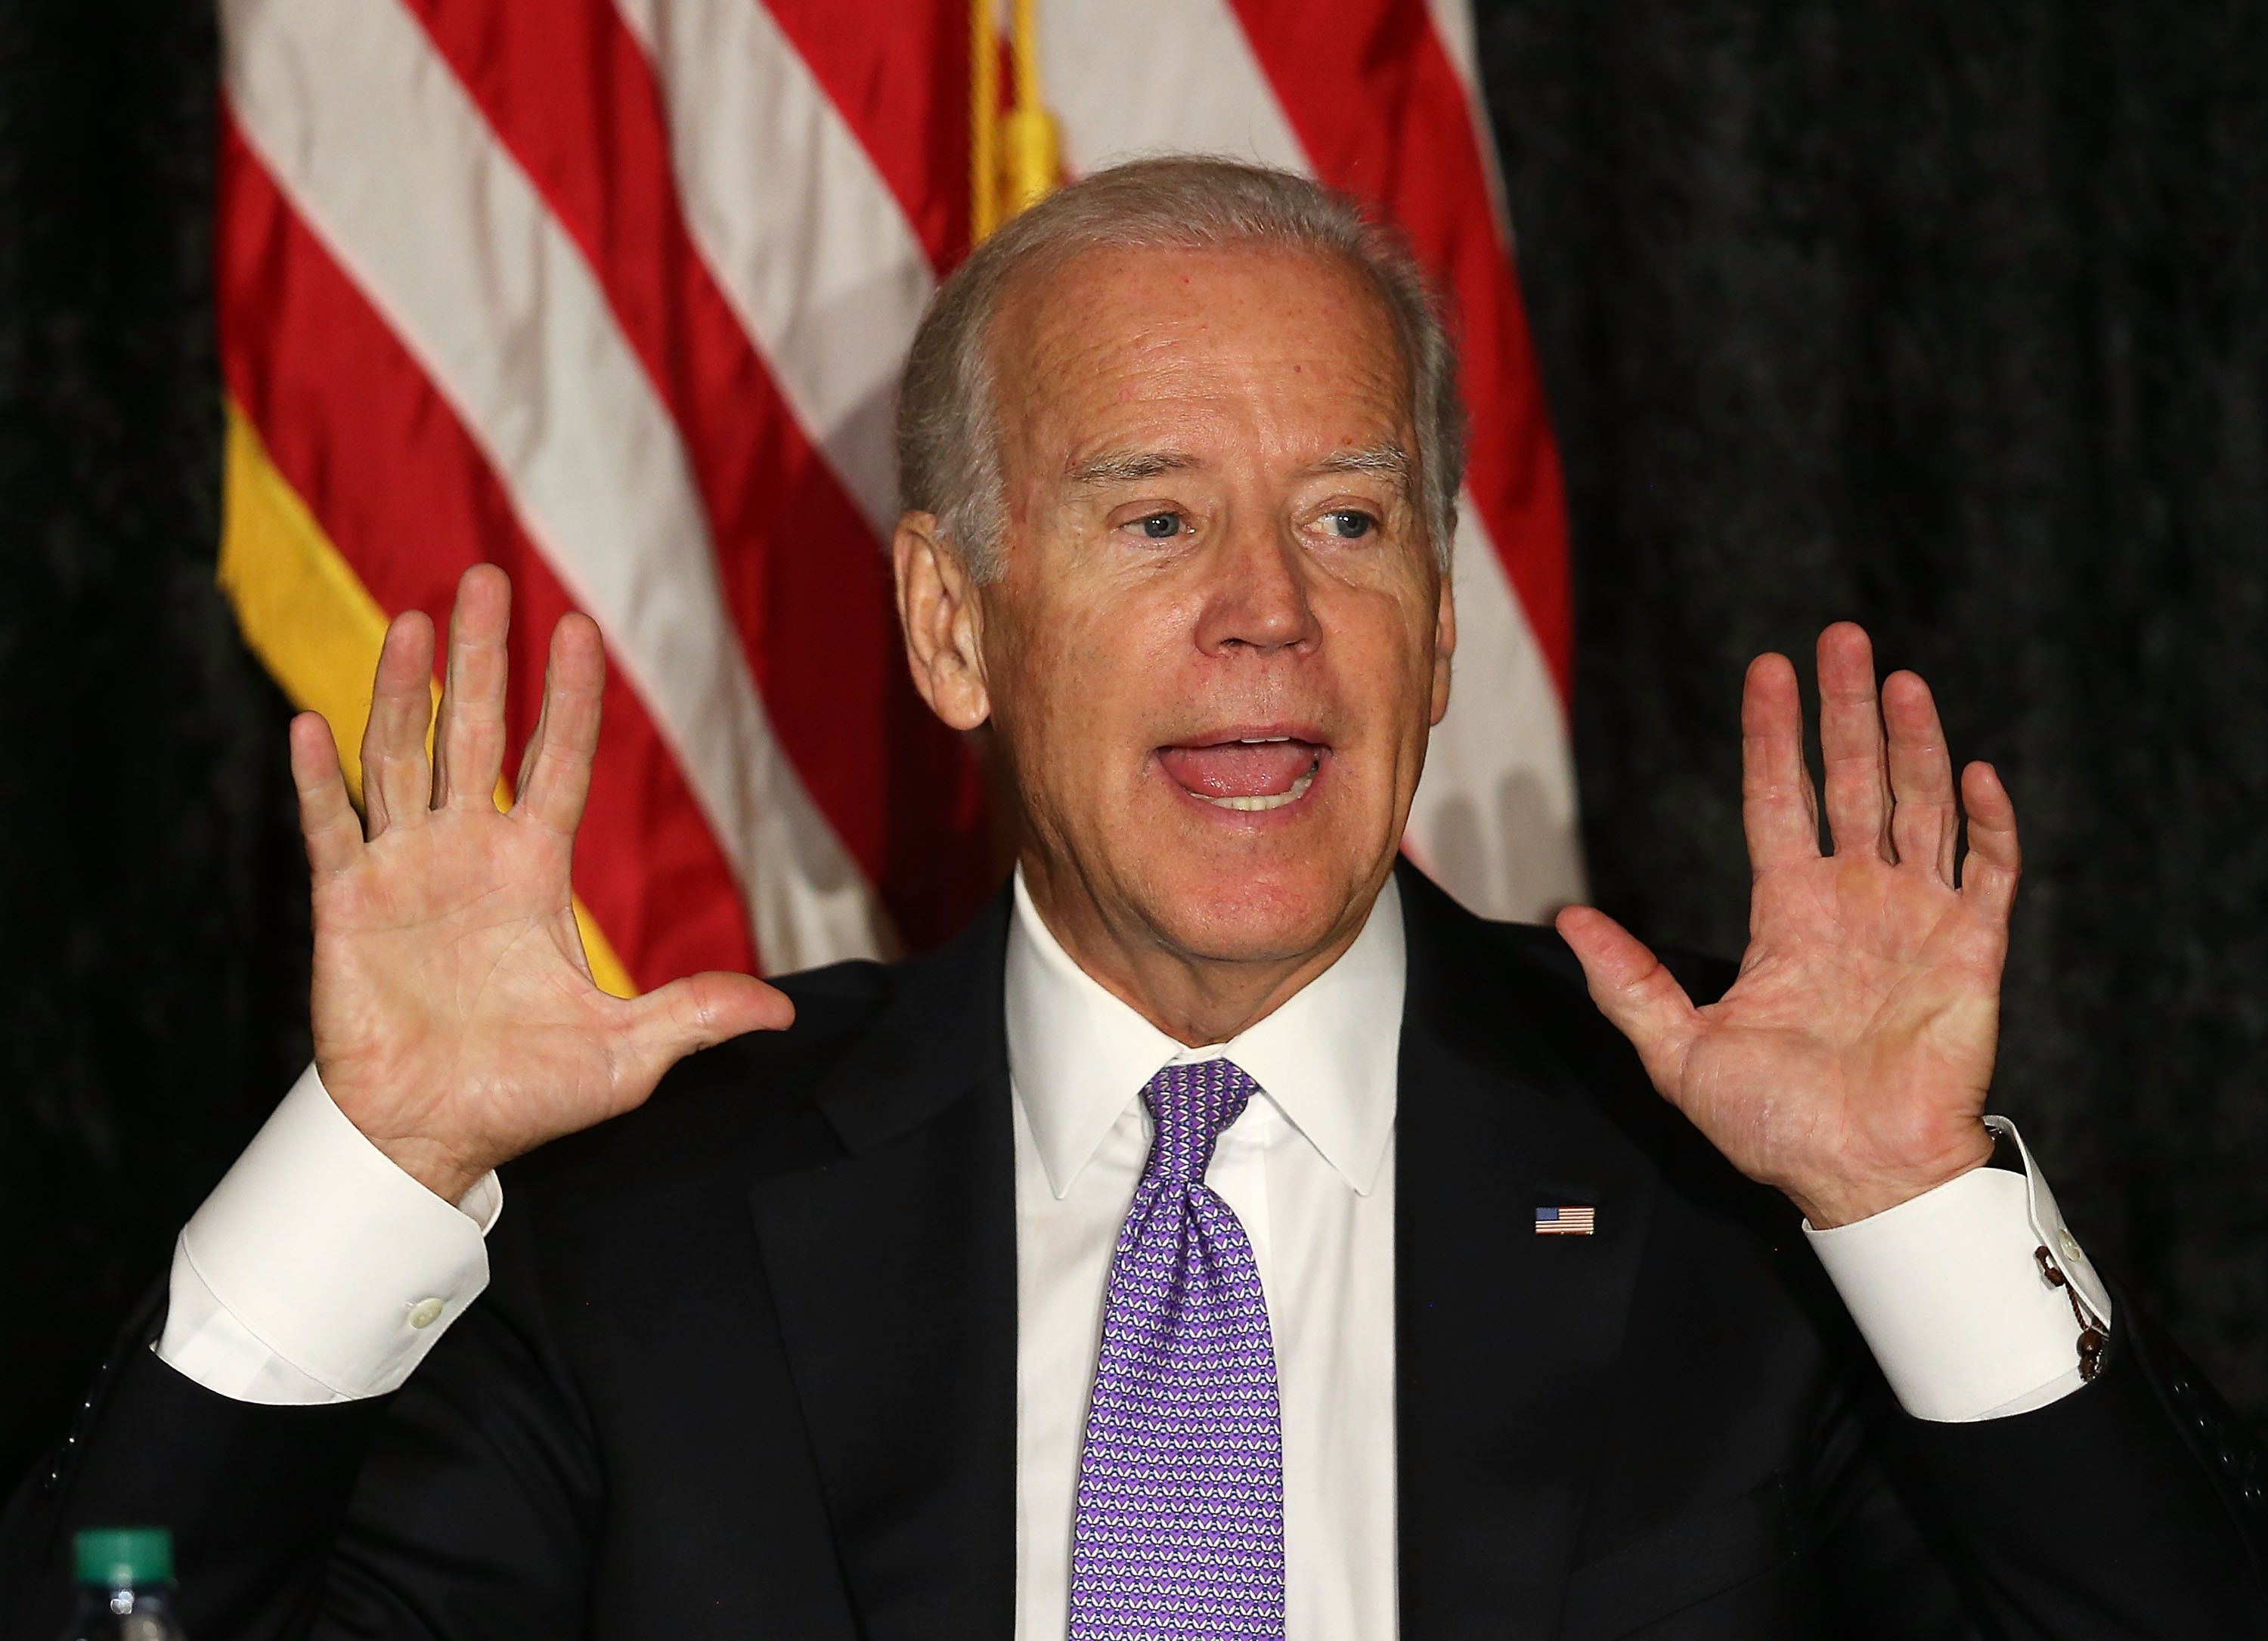 Perhaps the vice president has evolved on reproductive rights?